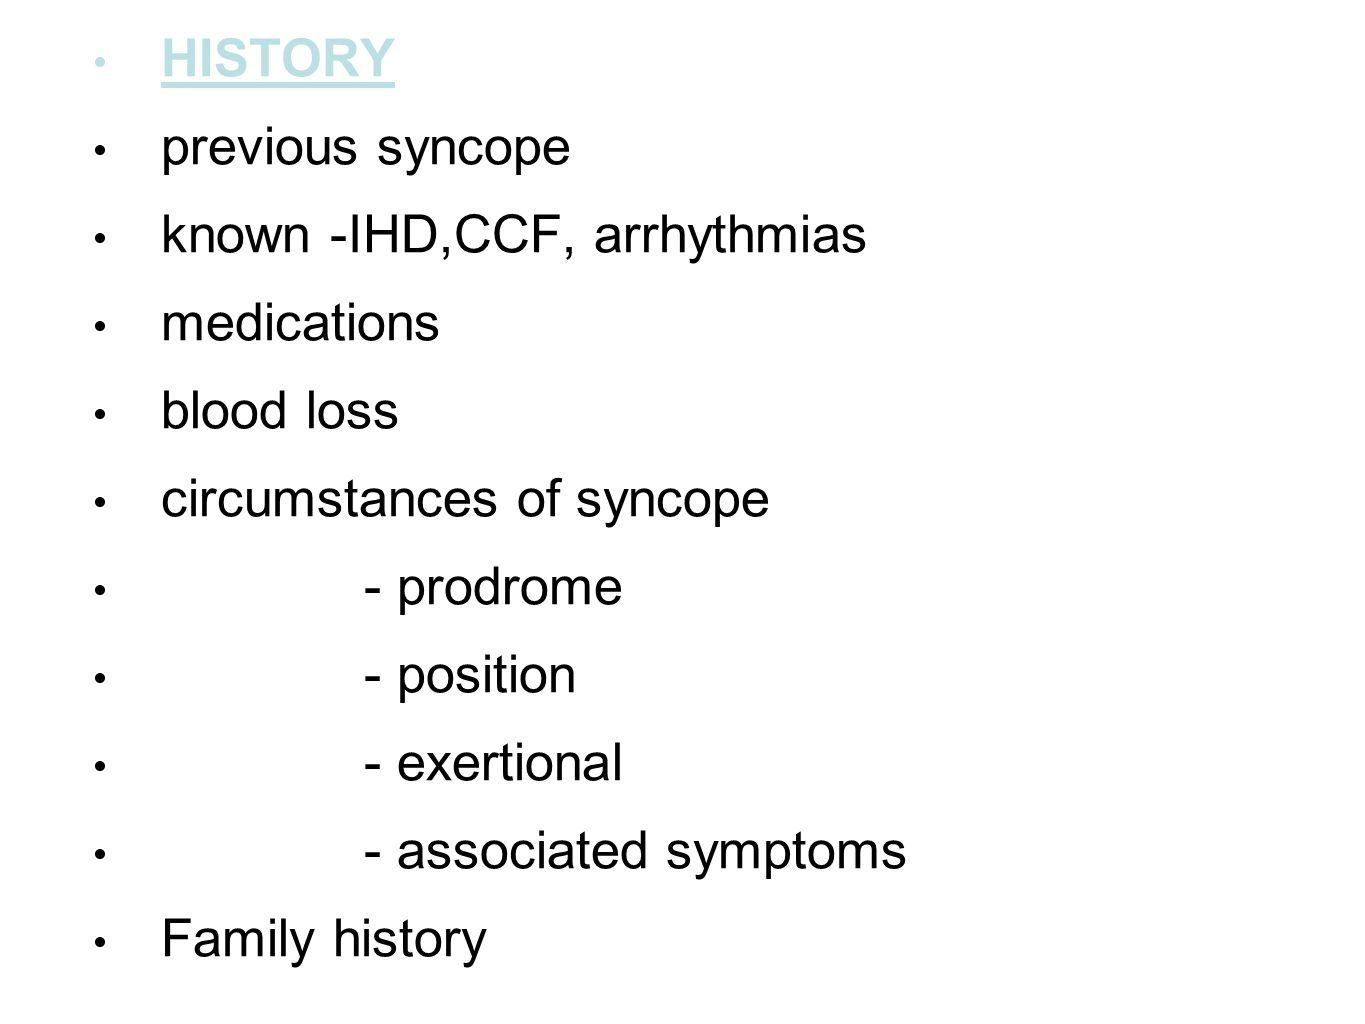 HISTORY previous syncope known -IHD,CCF, arrhythmias medications blood loss circumstances of syncope - prodrome - position - exertional - associated s